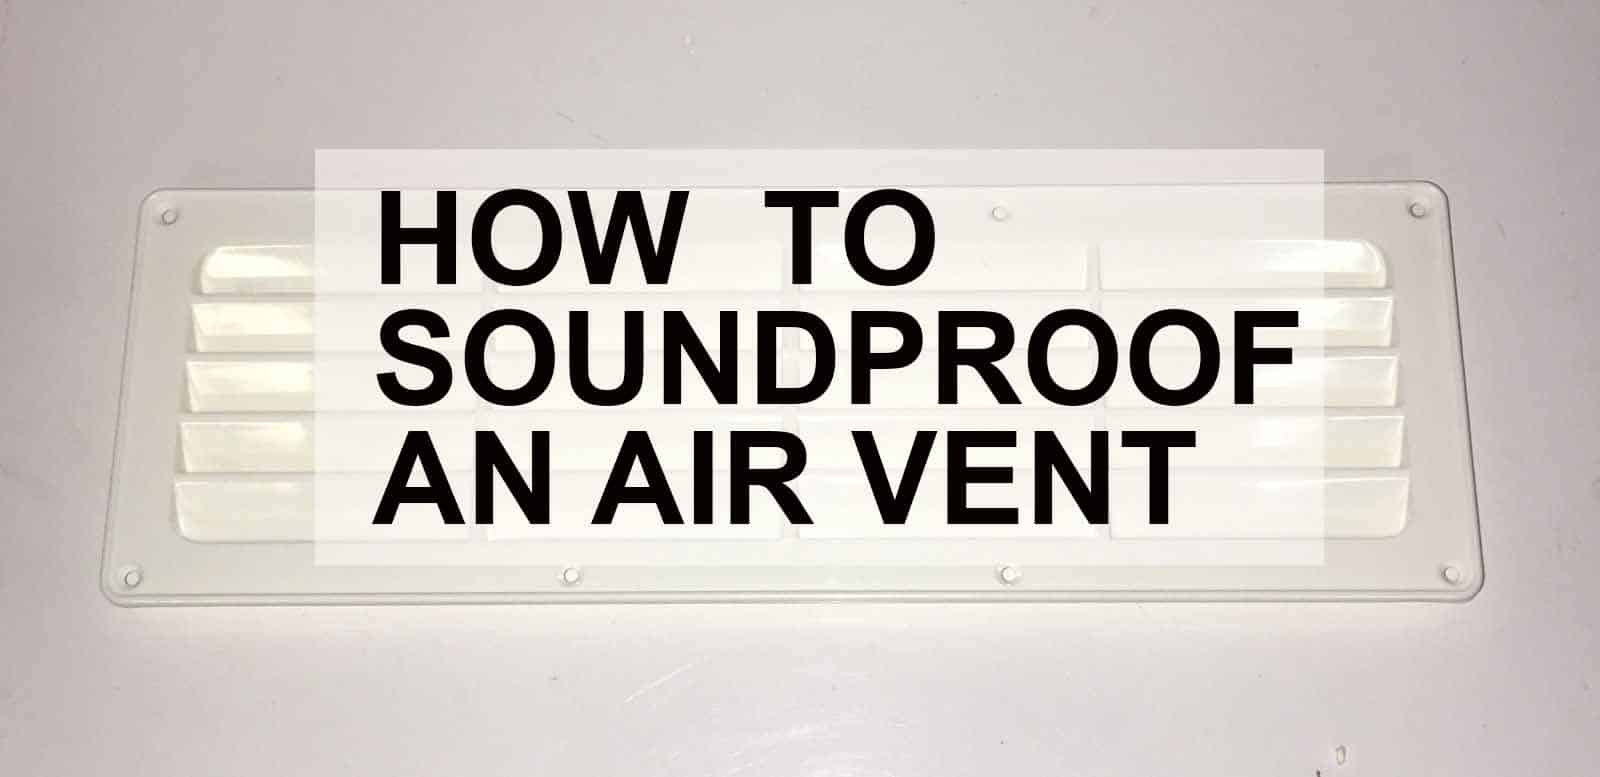 How to soundproof an air vent